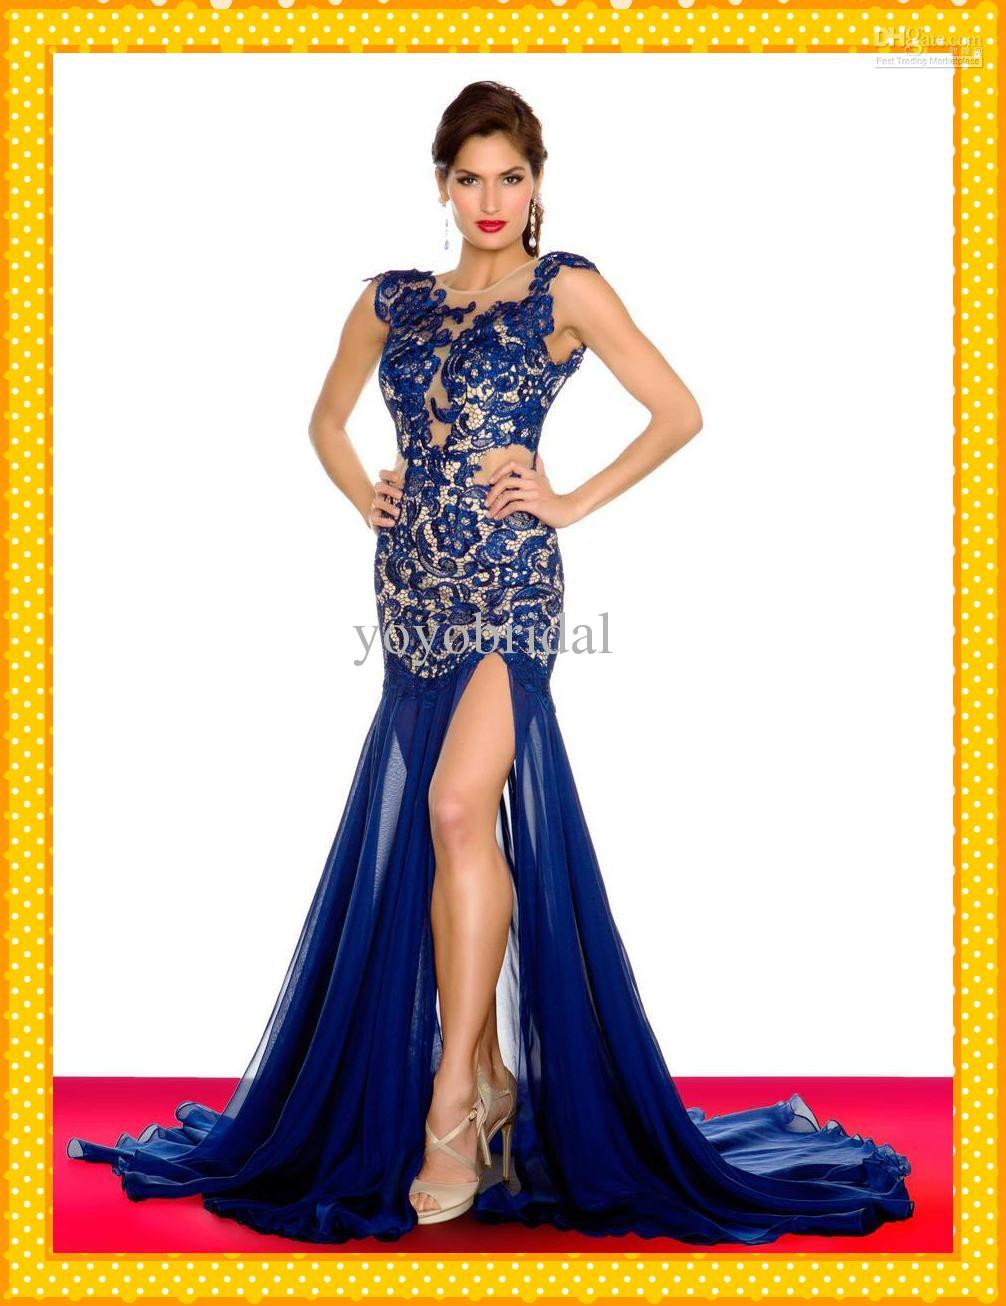 2017 Pageant Dresses HOT Sexy Pageant Dress Mermaid Royal Blue ...